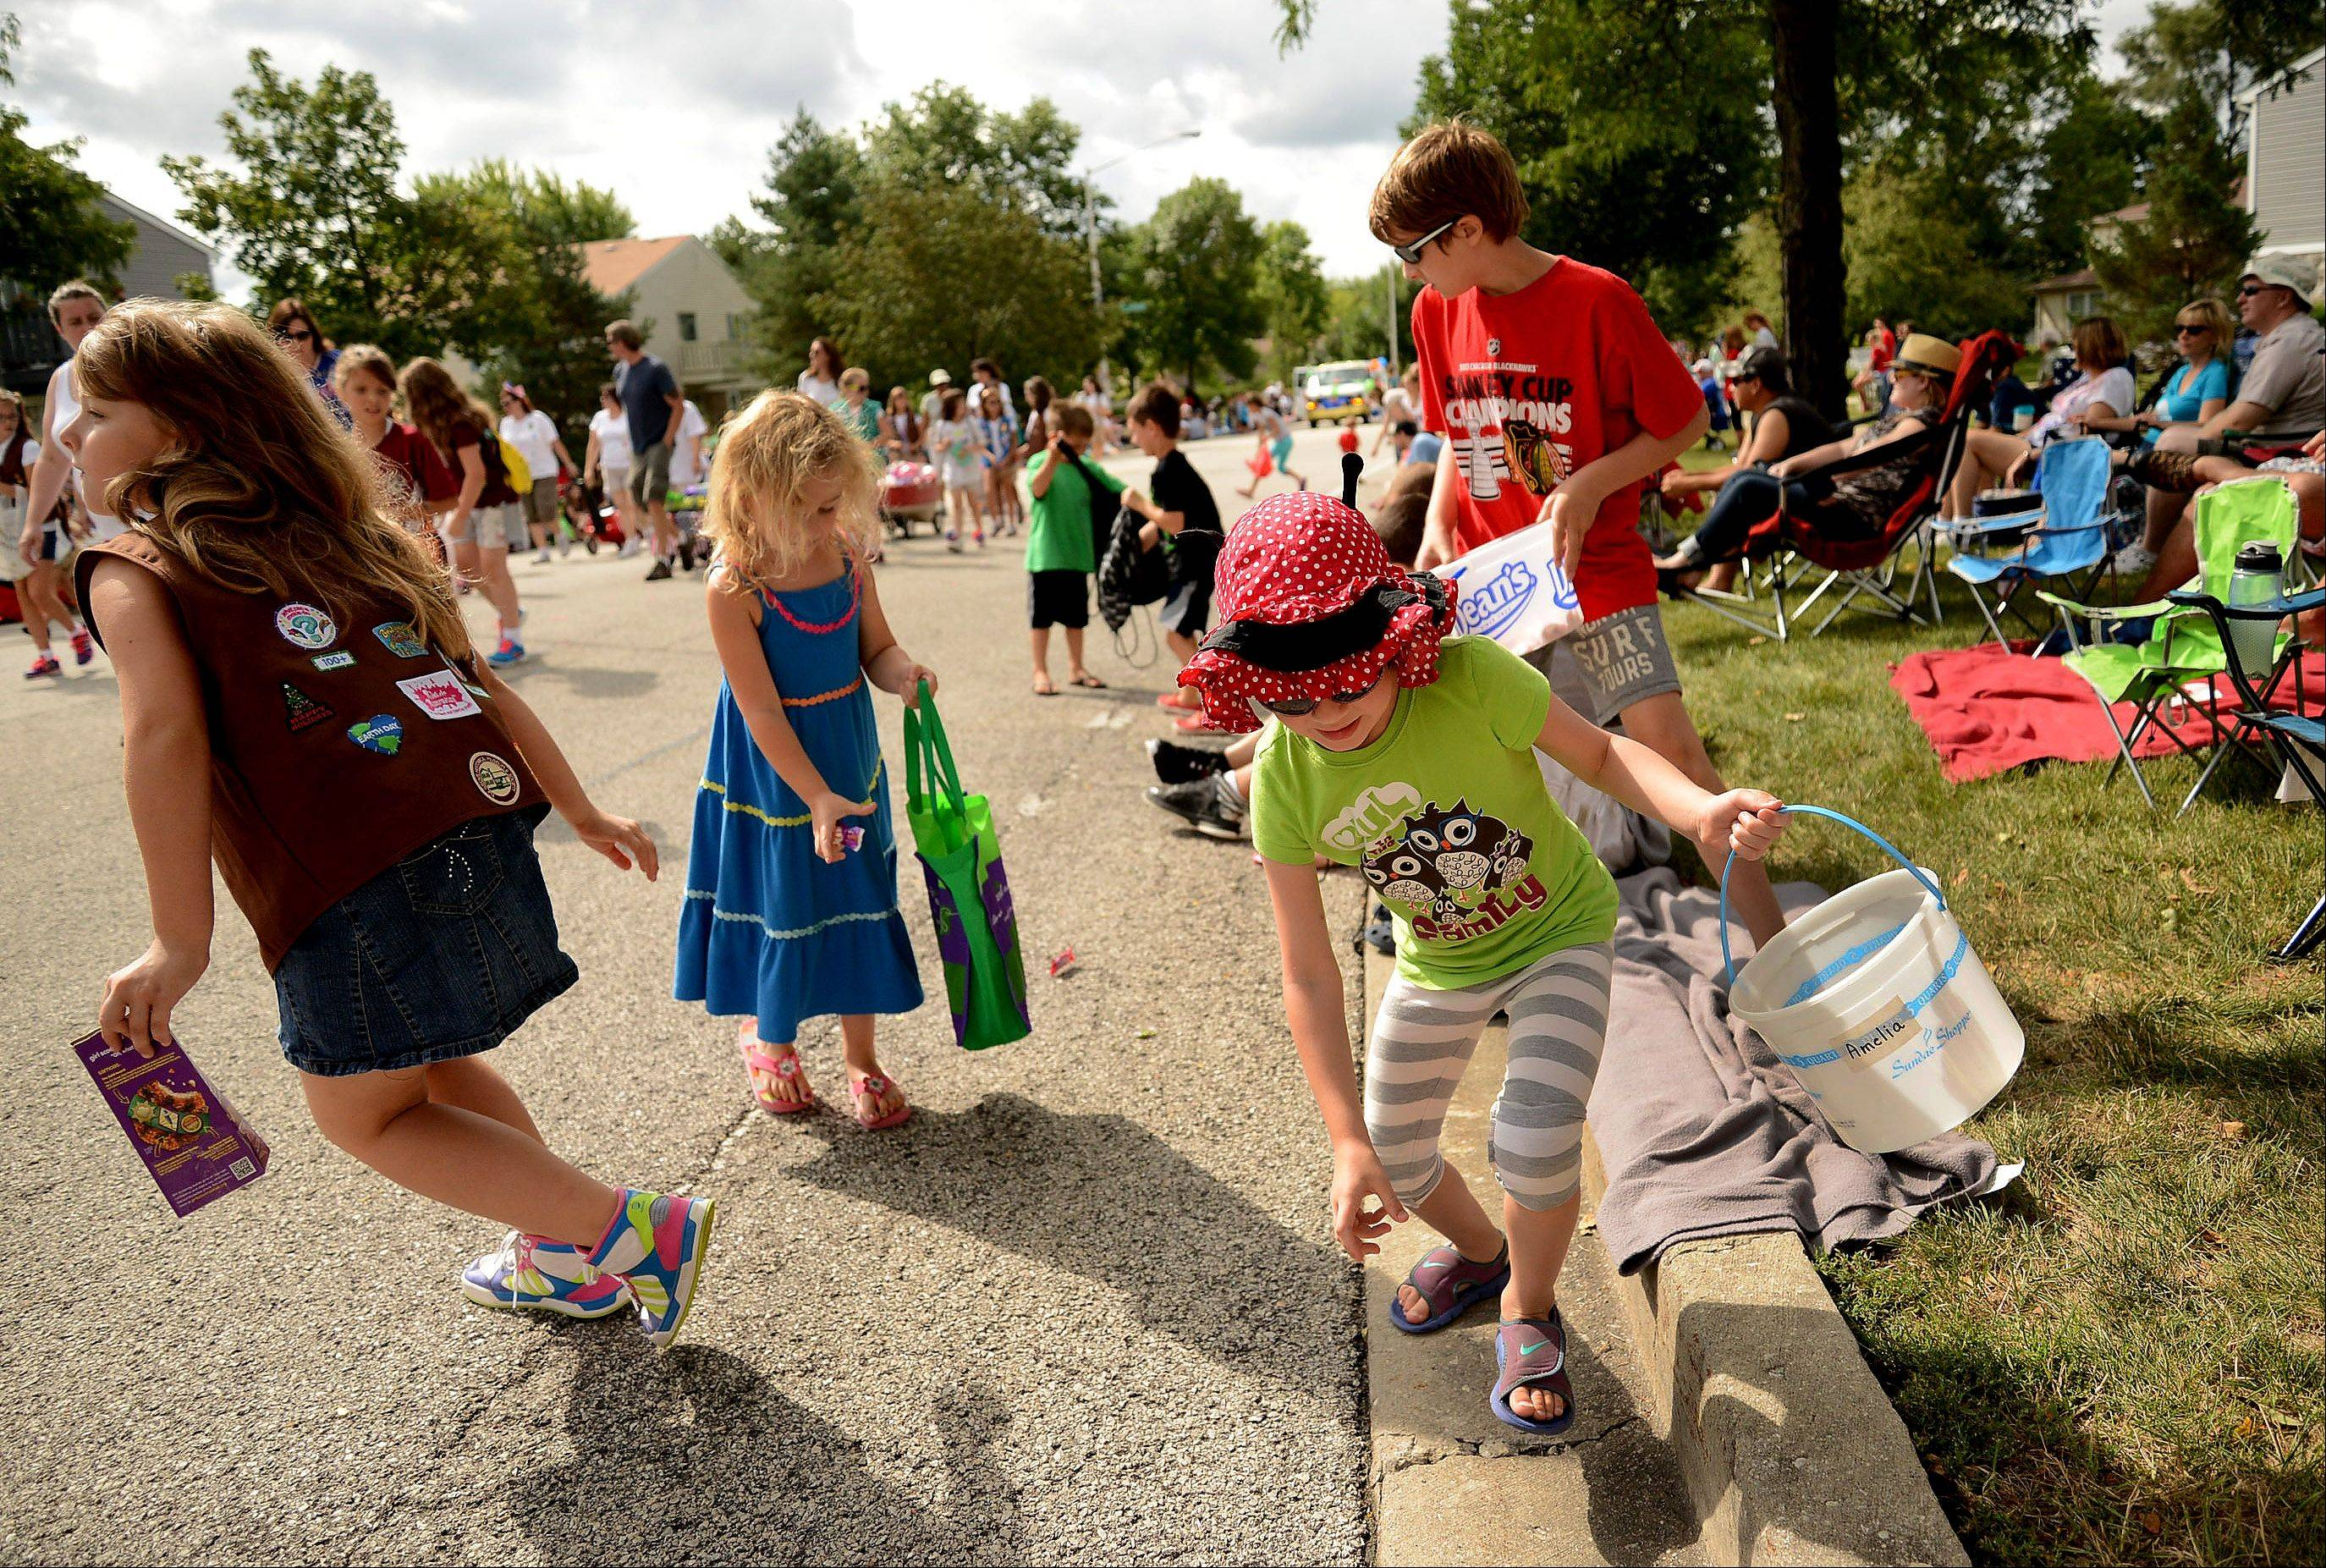 4-year-old Amelia Kozial, right, chases after some candy along the parade route during the annual Schaumburg Septemberfest parade.